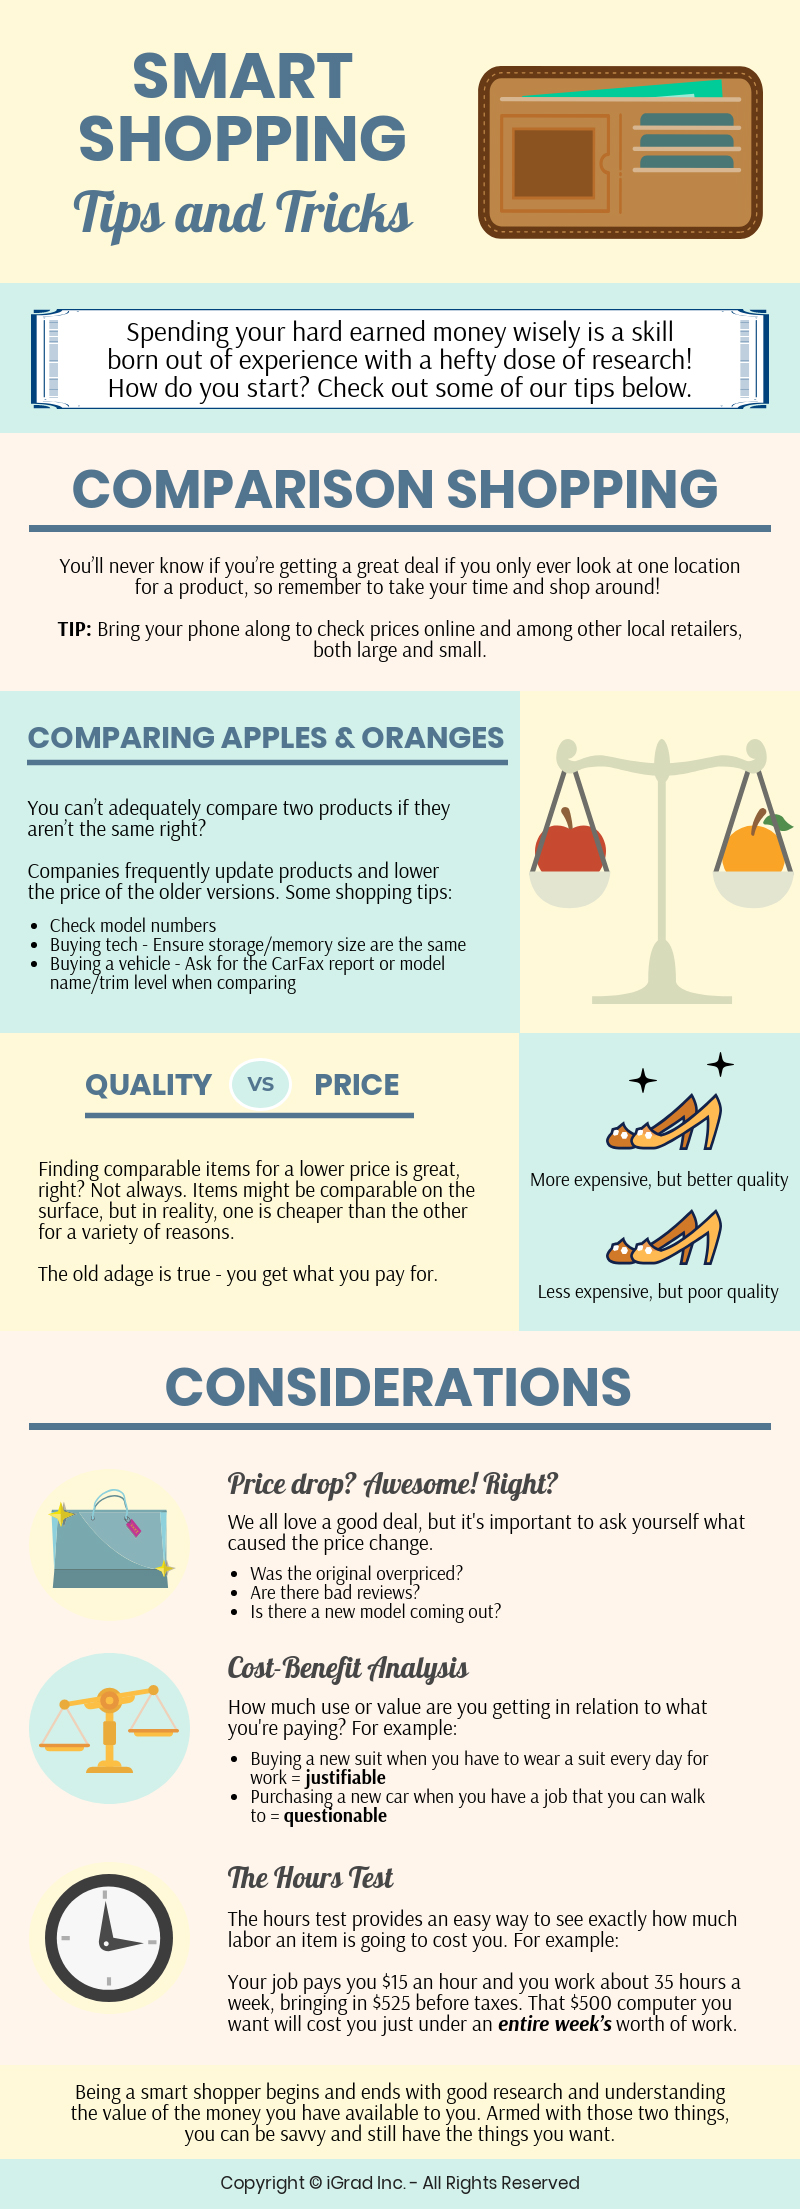 Smart Shopping: Tips and Tricks